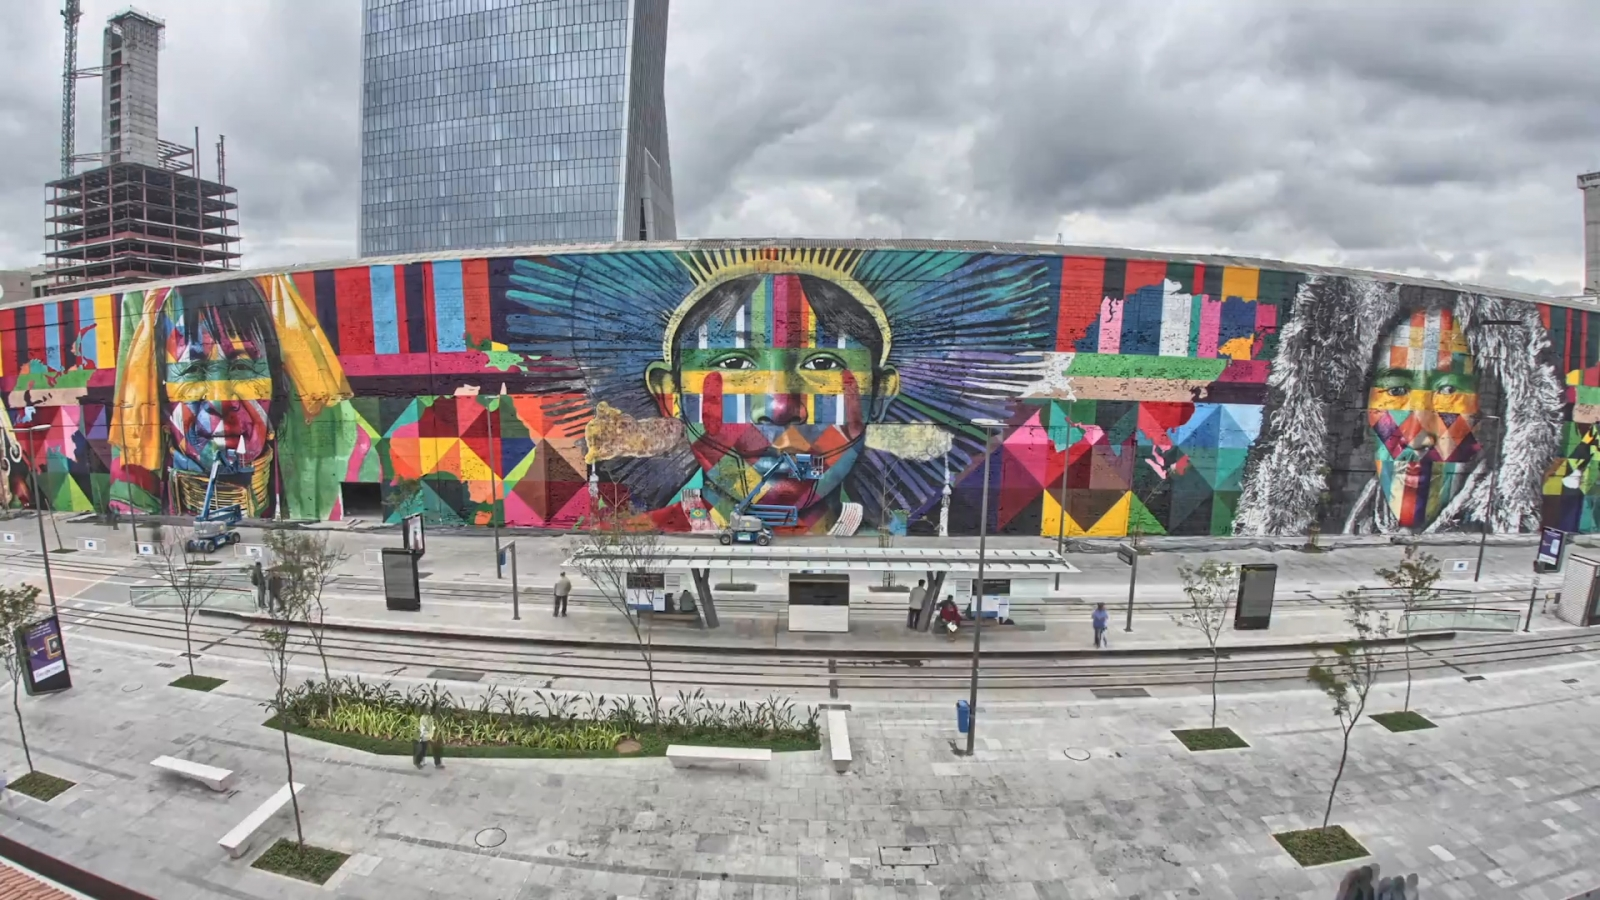 Paint Wall Mural Ethnicities By Eduardo Kobra